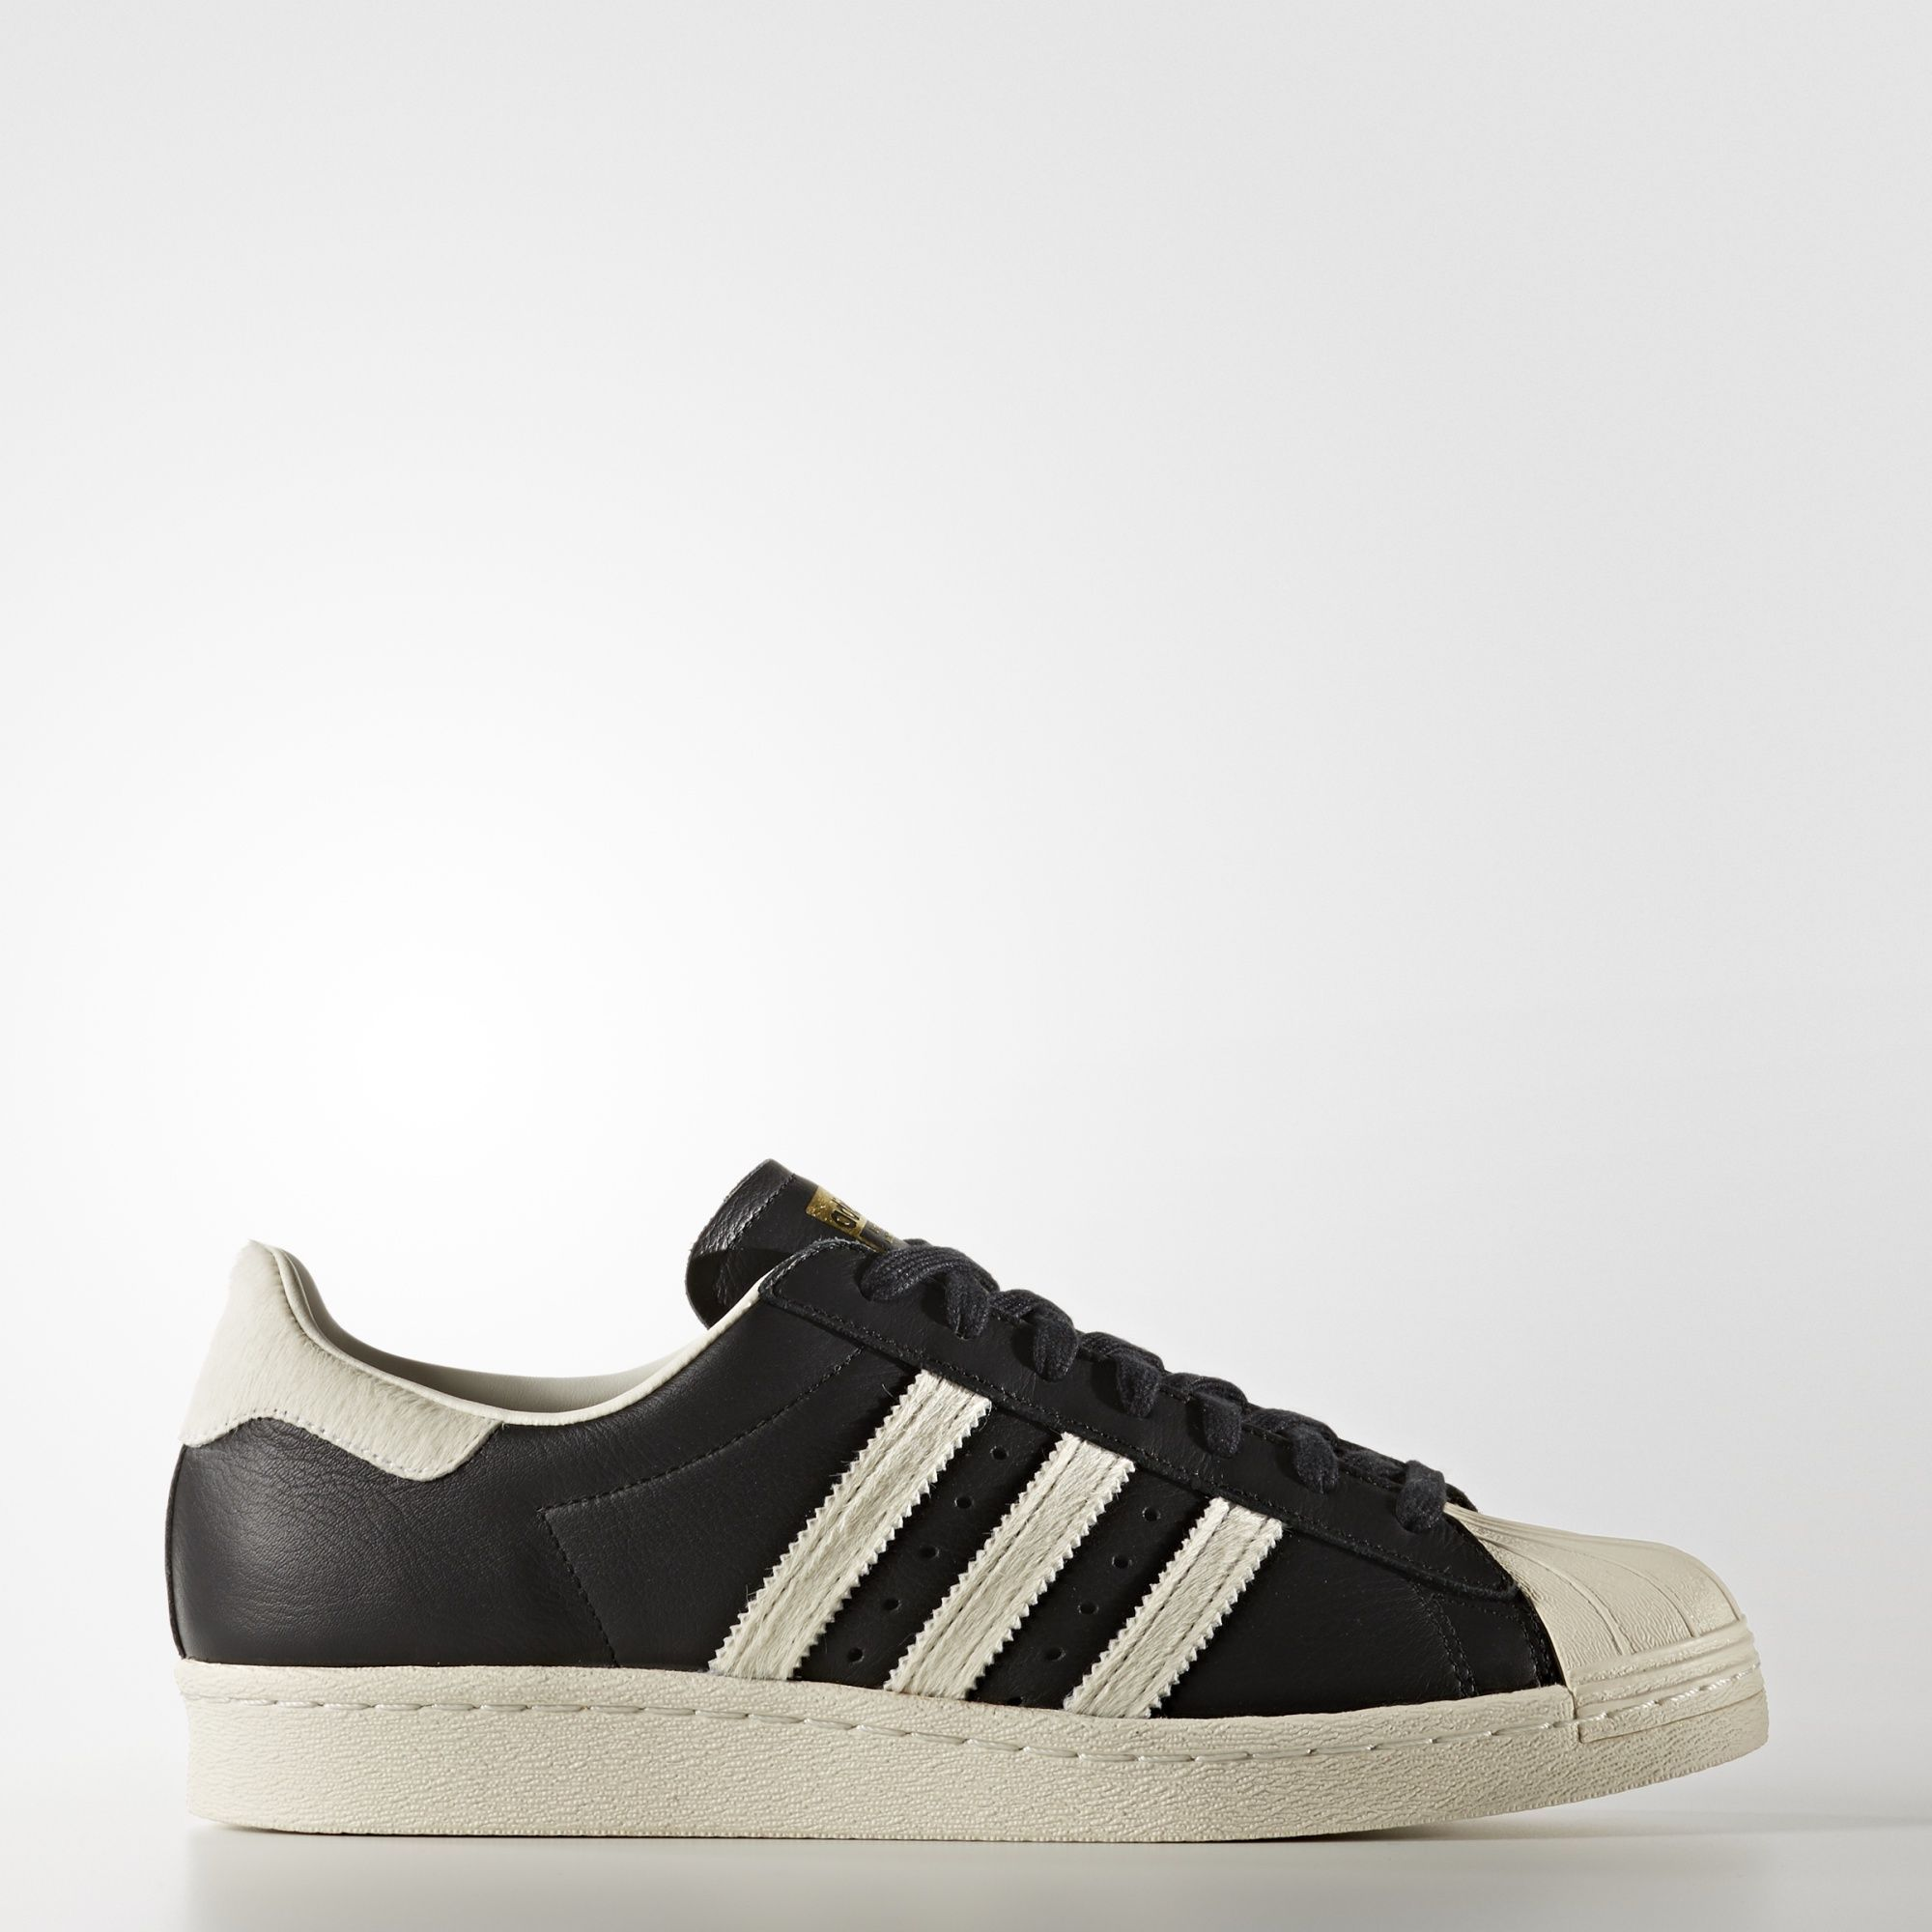 adidas superstar negras 80s